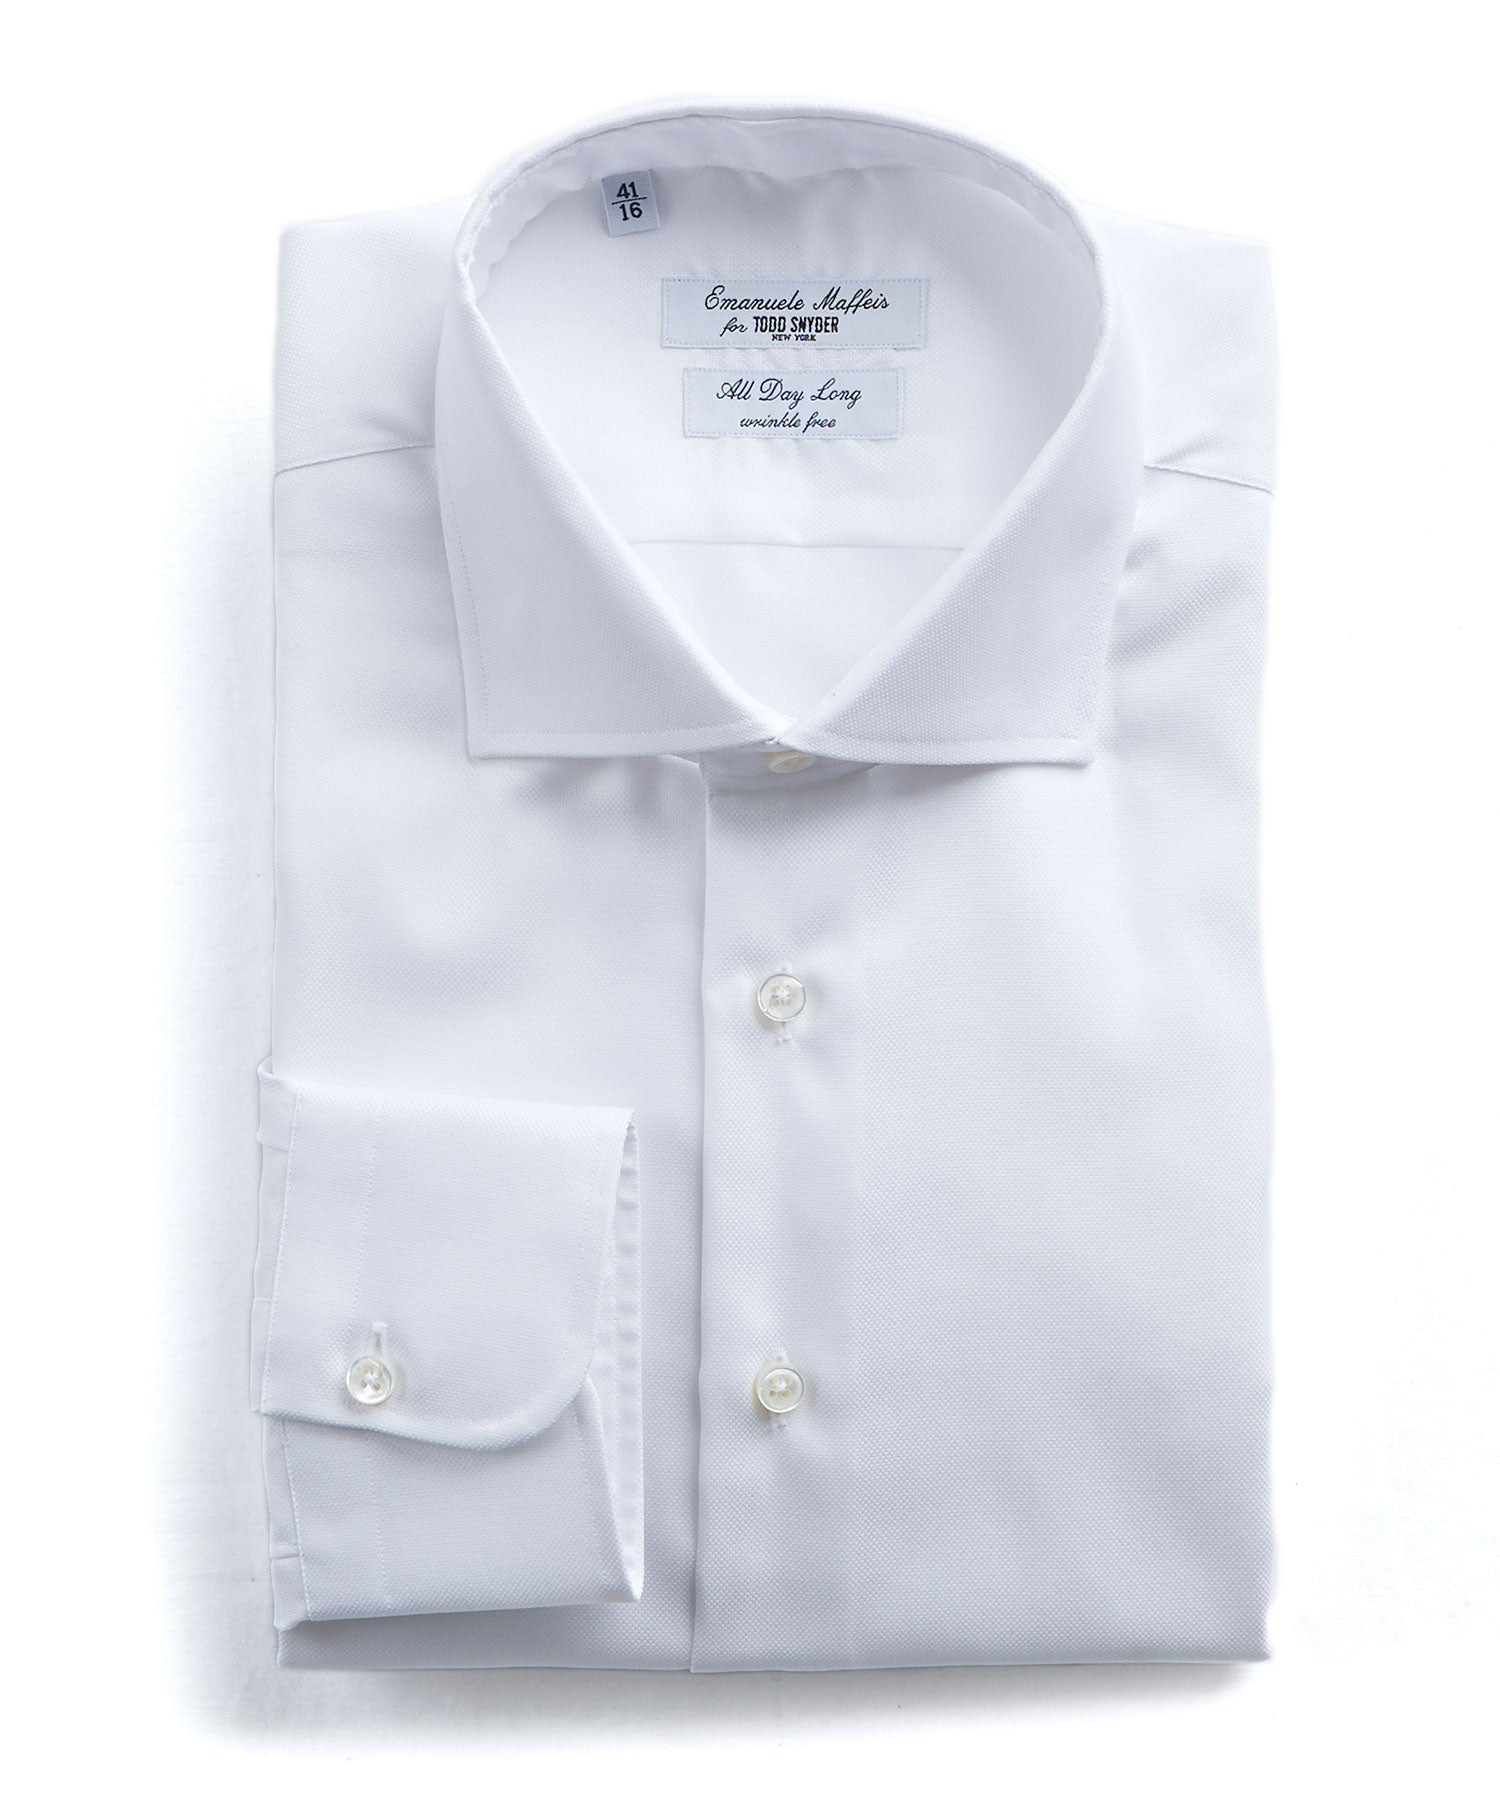 Emanuele Maffeis + Todd Snyder White Wrinkle Free Dress Shirt